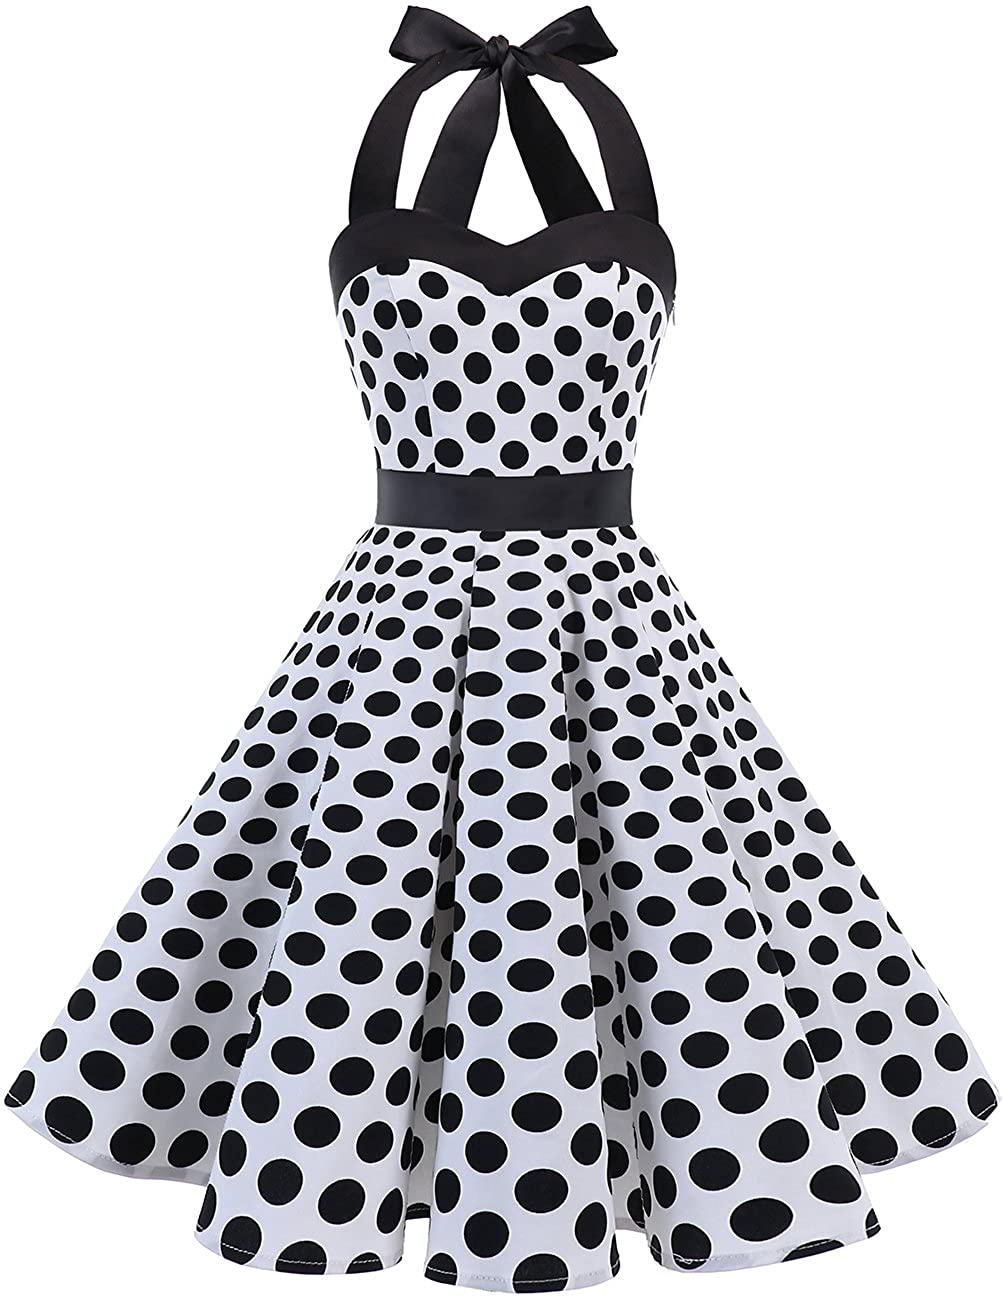 TALLA M. Dresstells® Halter 50s Rockabilly Polka Dots Audrey Dress Retro Cocktail Dress White Black Dot M